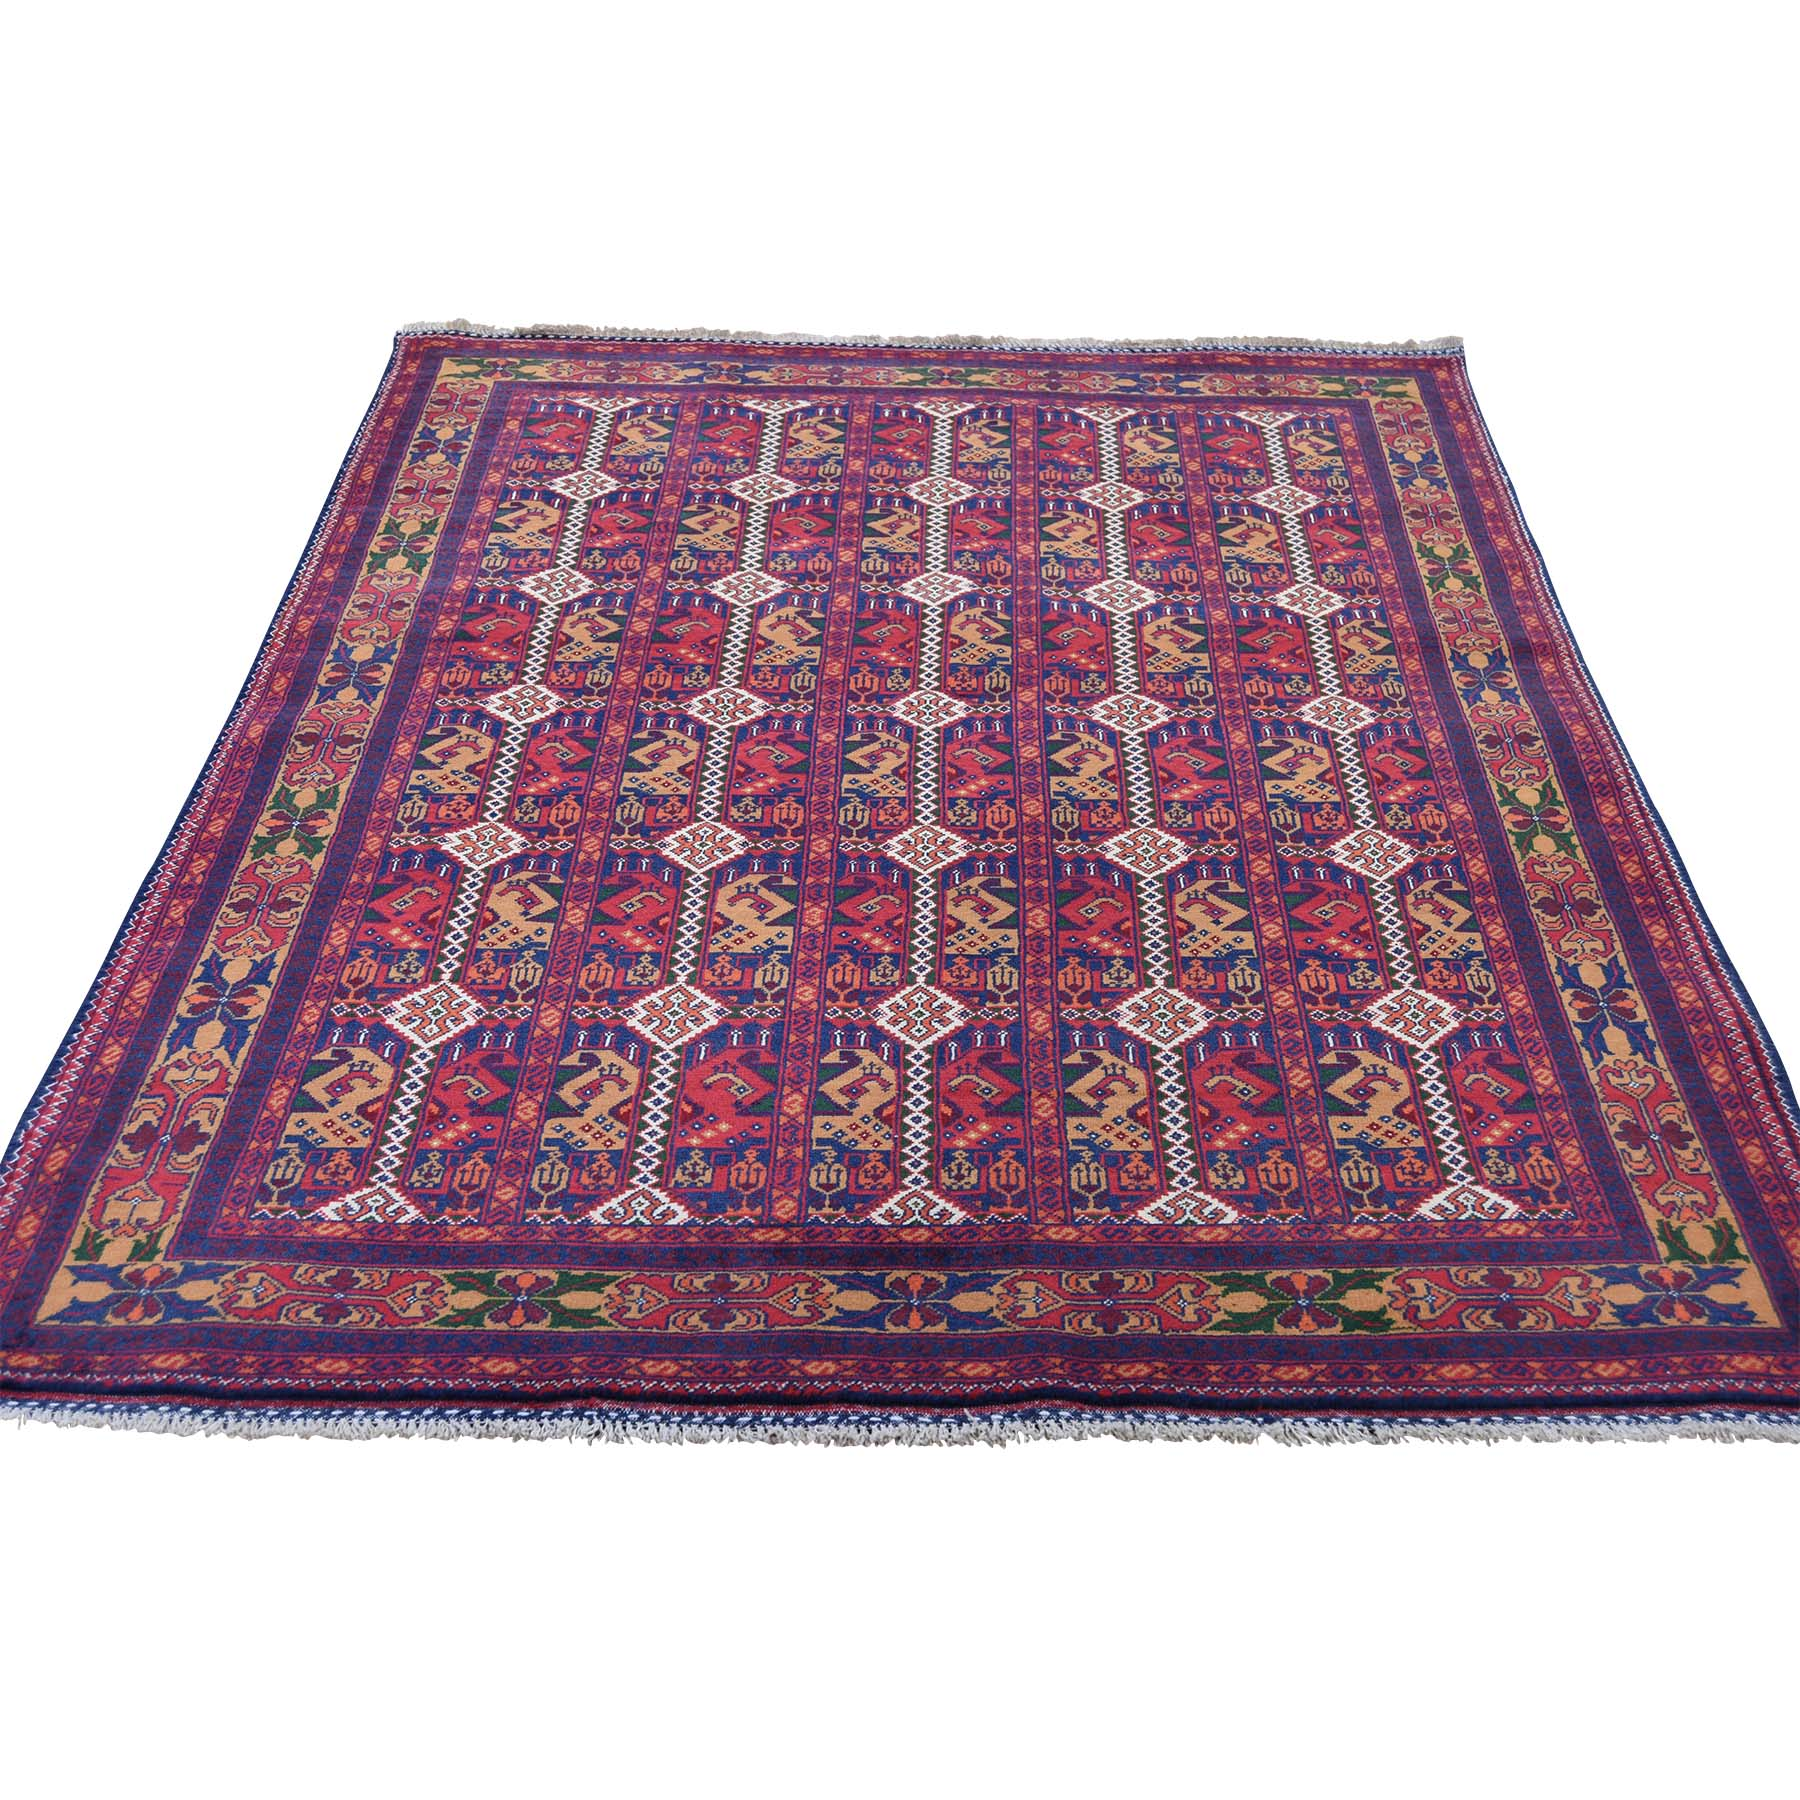 "4'8""X6'6"" Vegetable Dyes Afghan Khamyab Hand Knotted Pure Wool Rug moaddcb0"